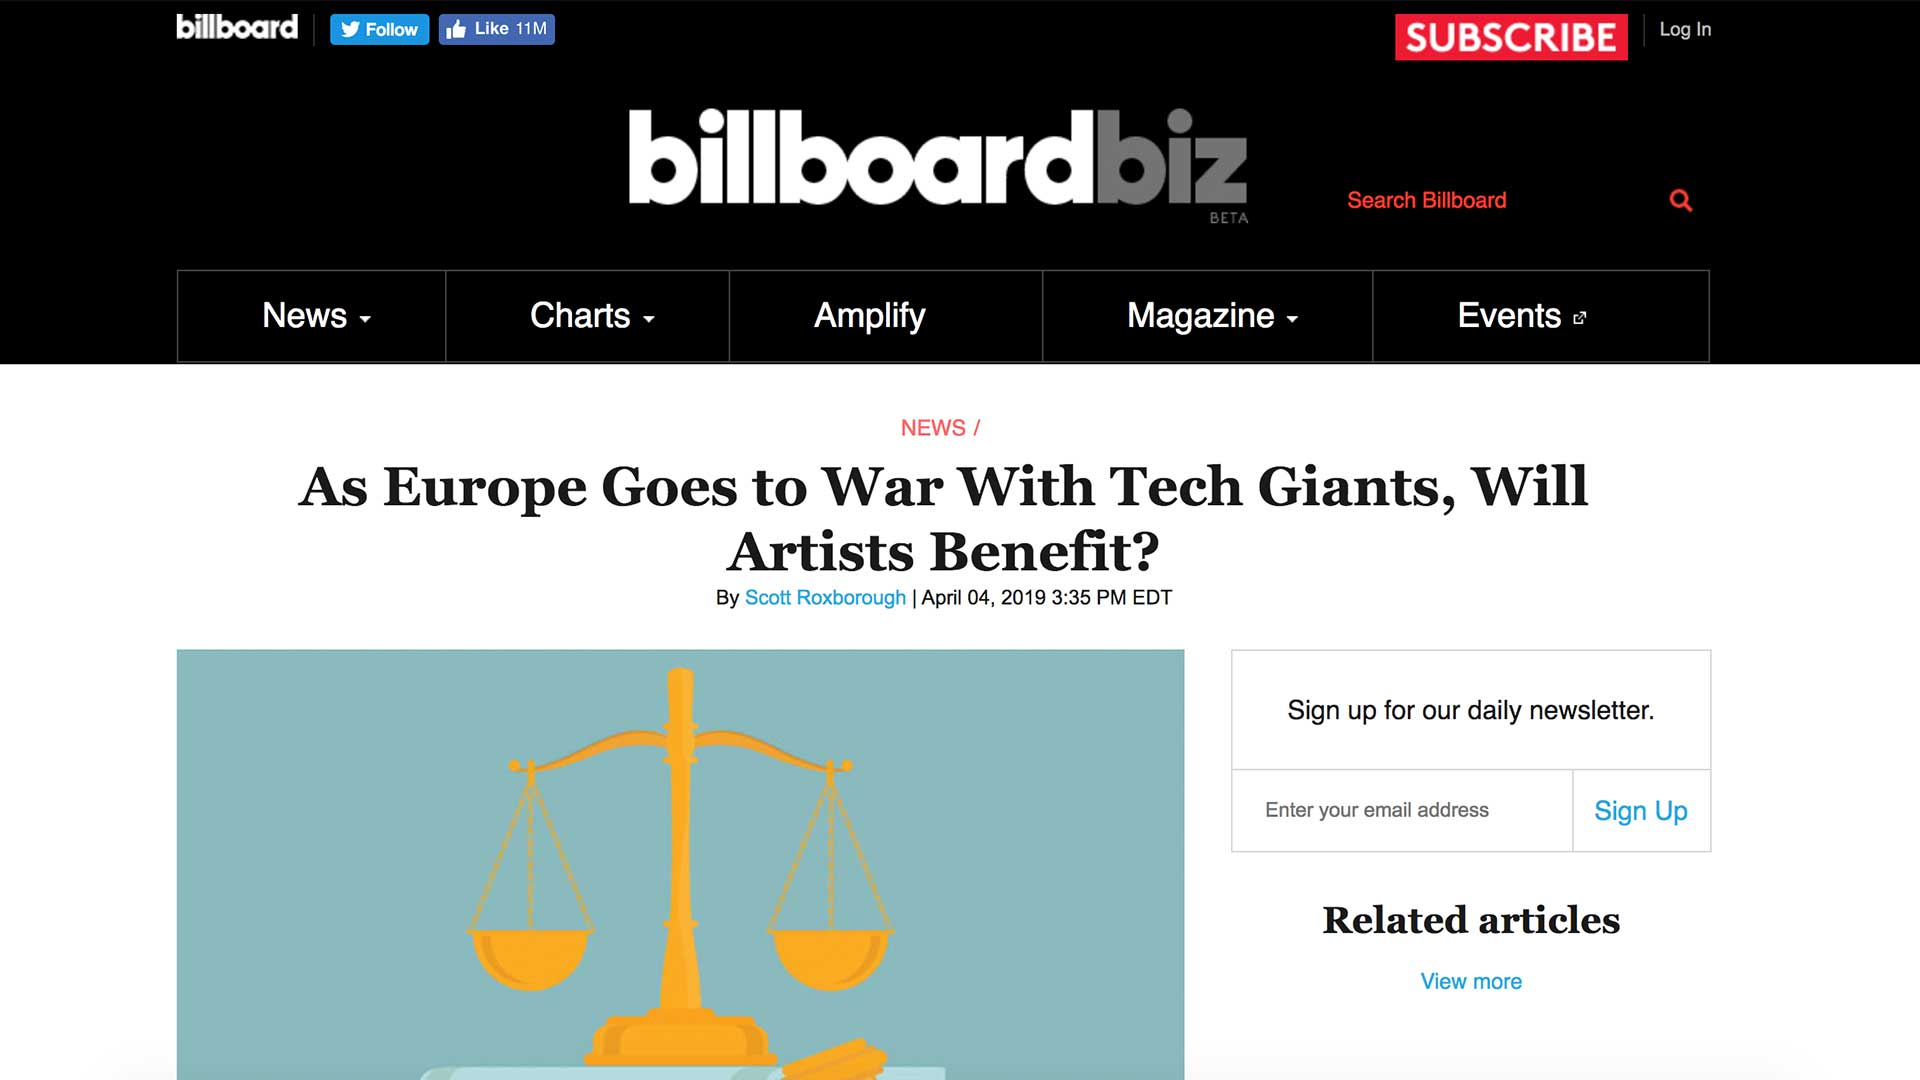 Fairness Rocks News As Europe Goes to War With Tech Giants, Will Artists Benefit?